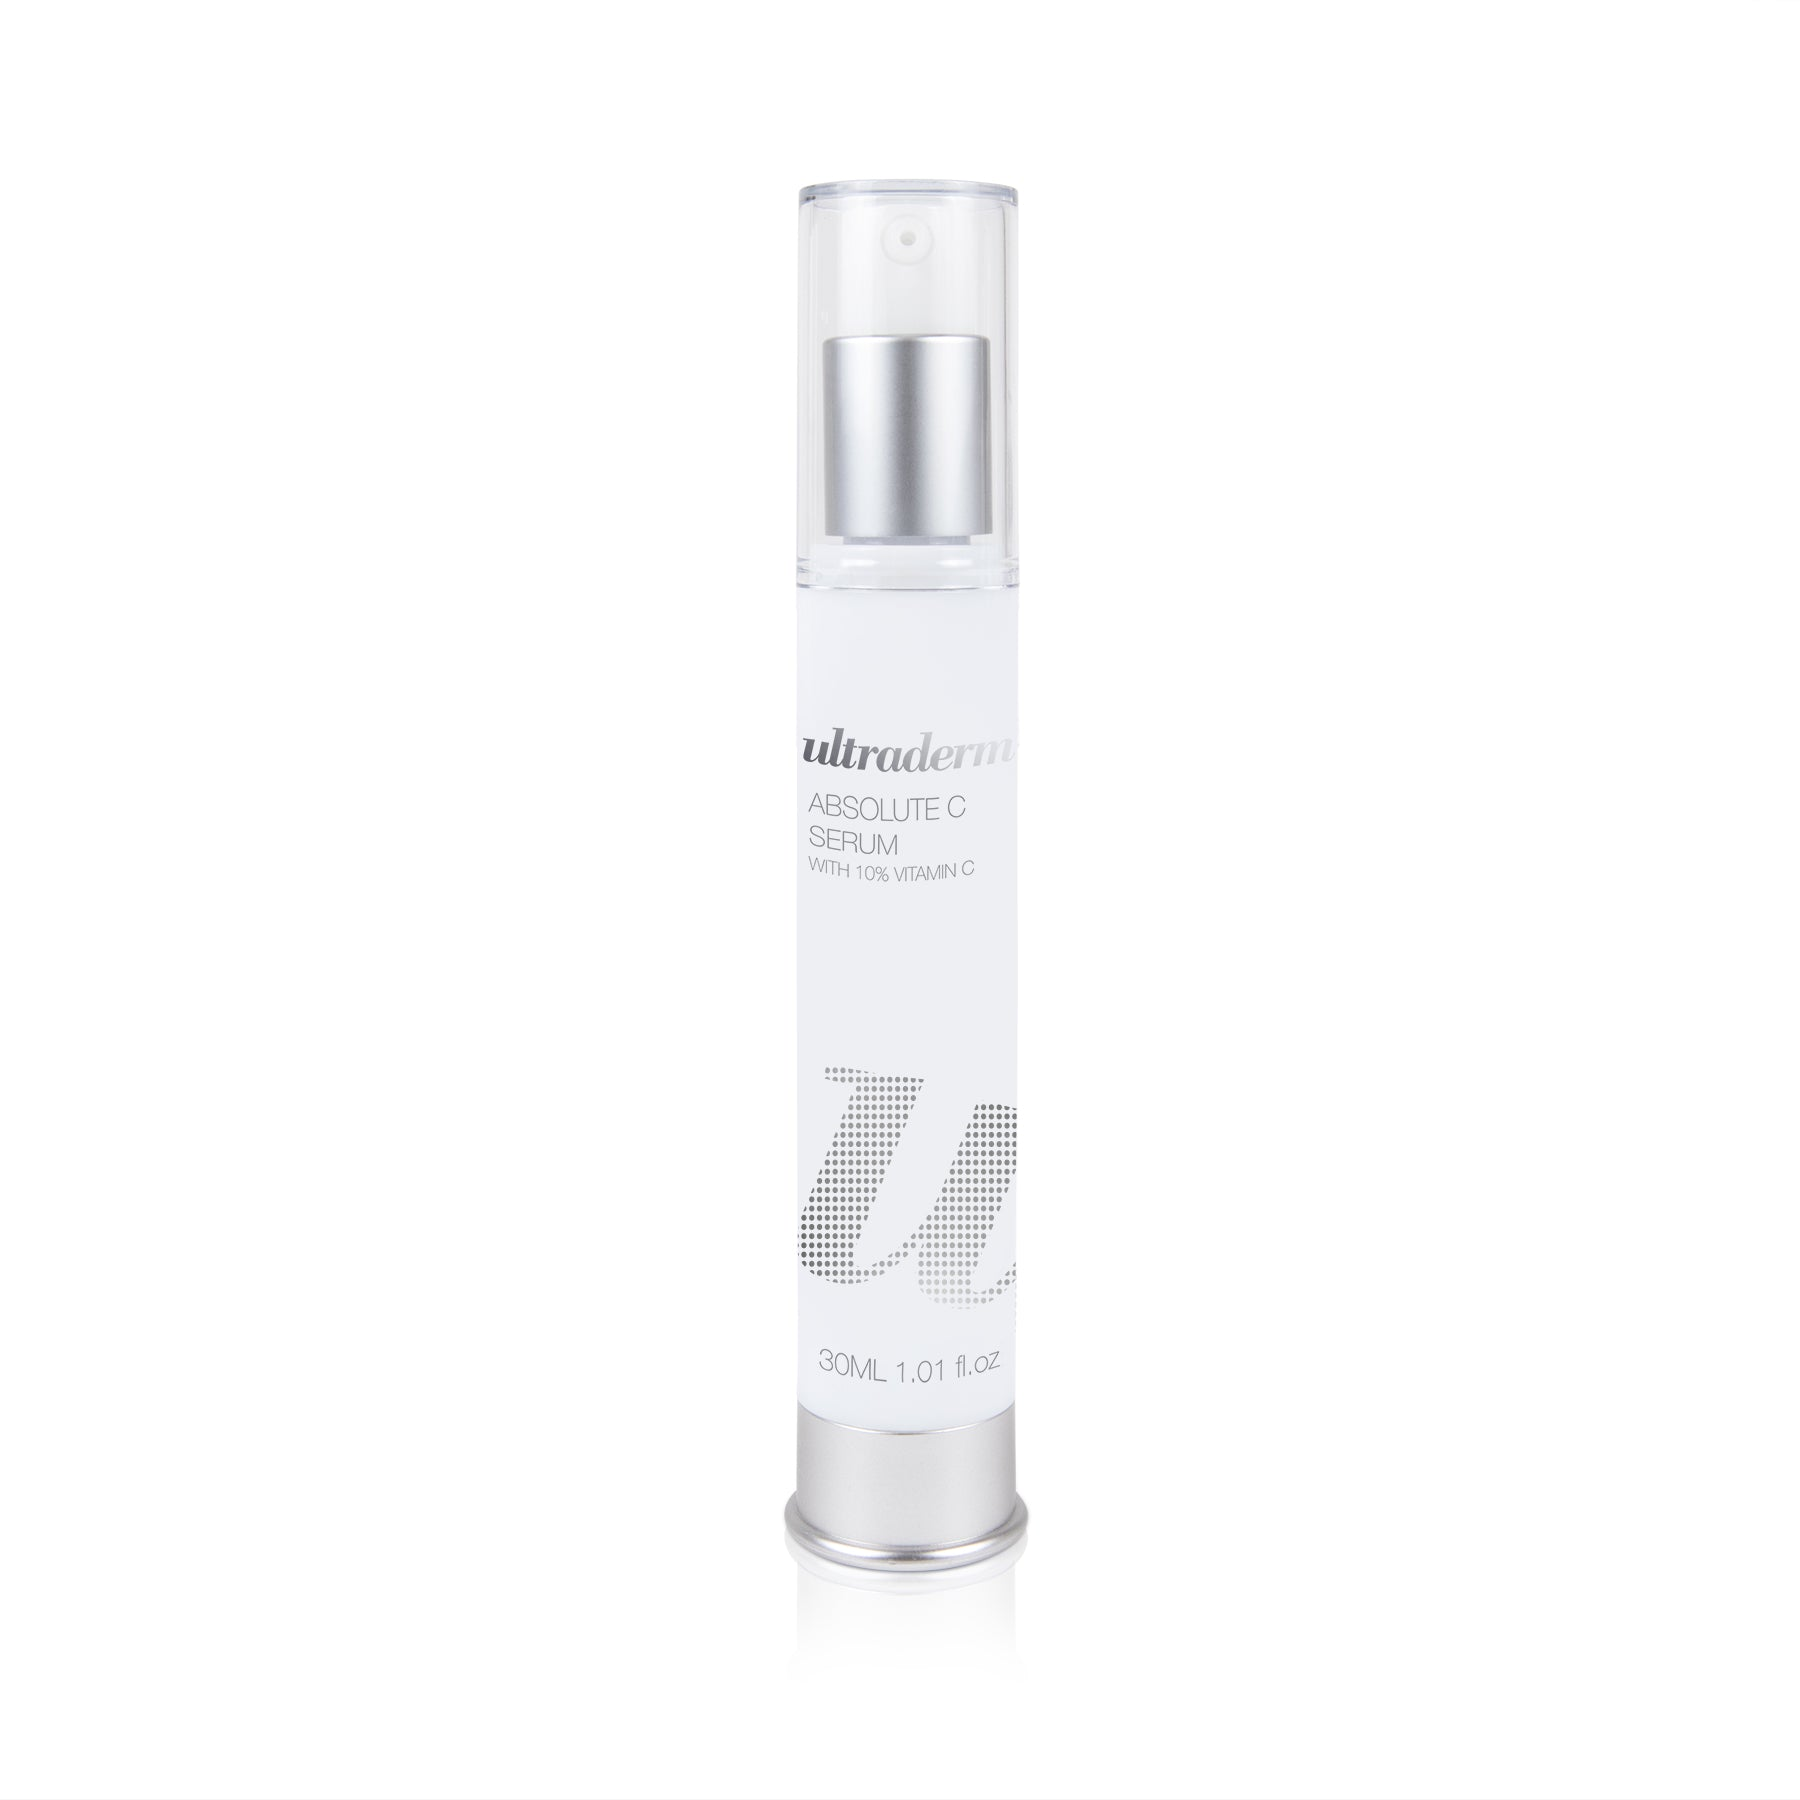 Ultraderm Absolute C Serum, Vitamin C Antioxidant Brightening Serum